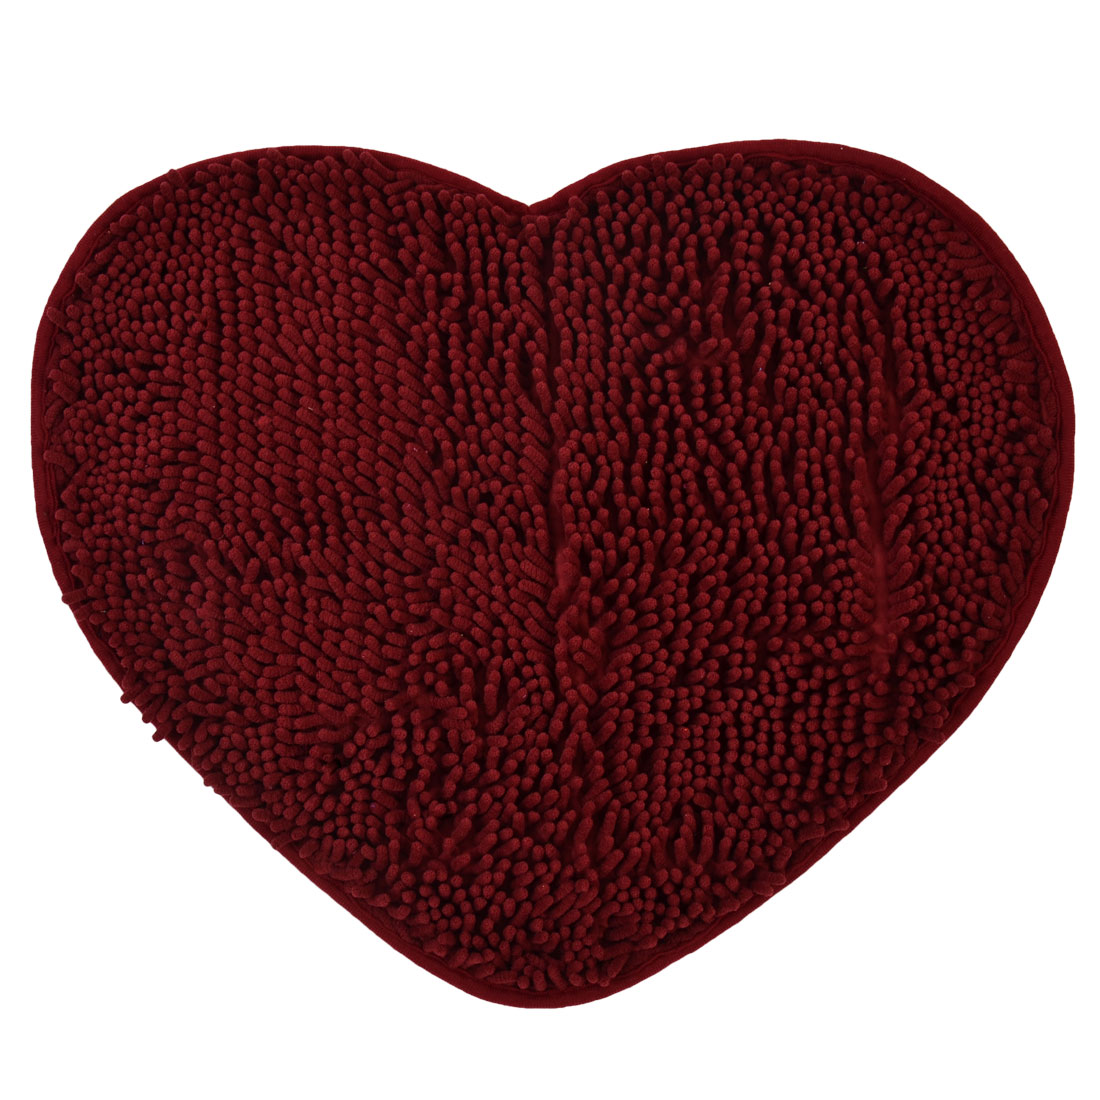 56cm x 45cm Wine Red Polyester Heart Shaped Absorbent Non-slip Pad Shower Rug